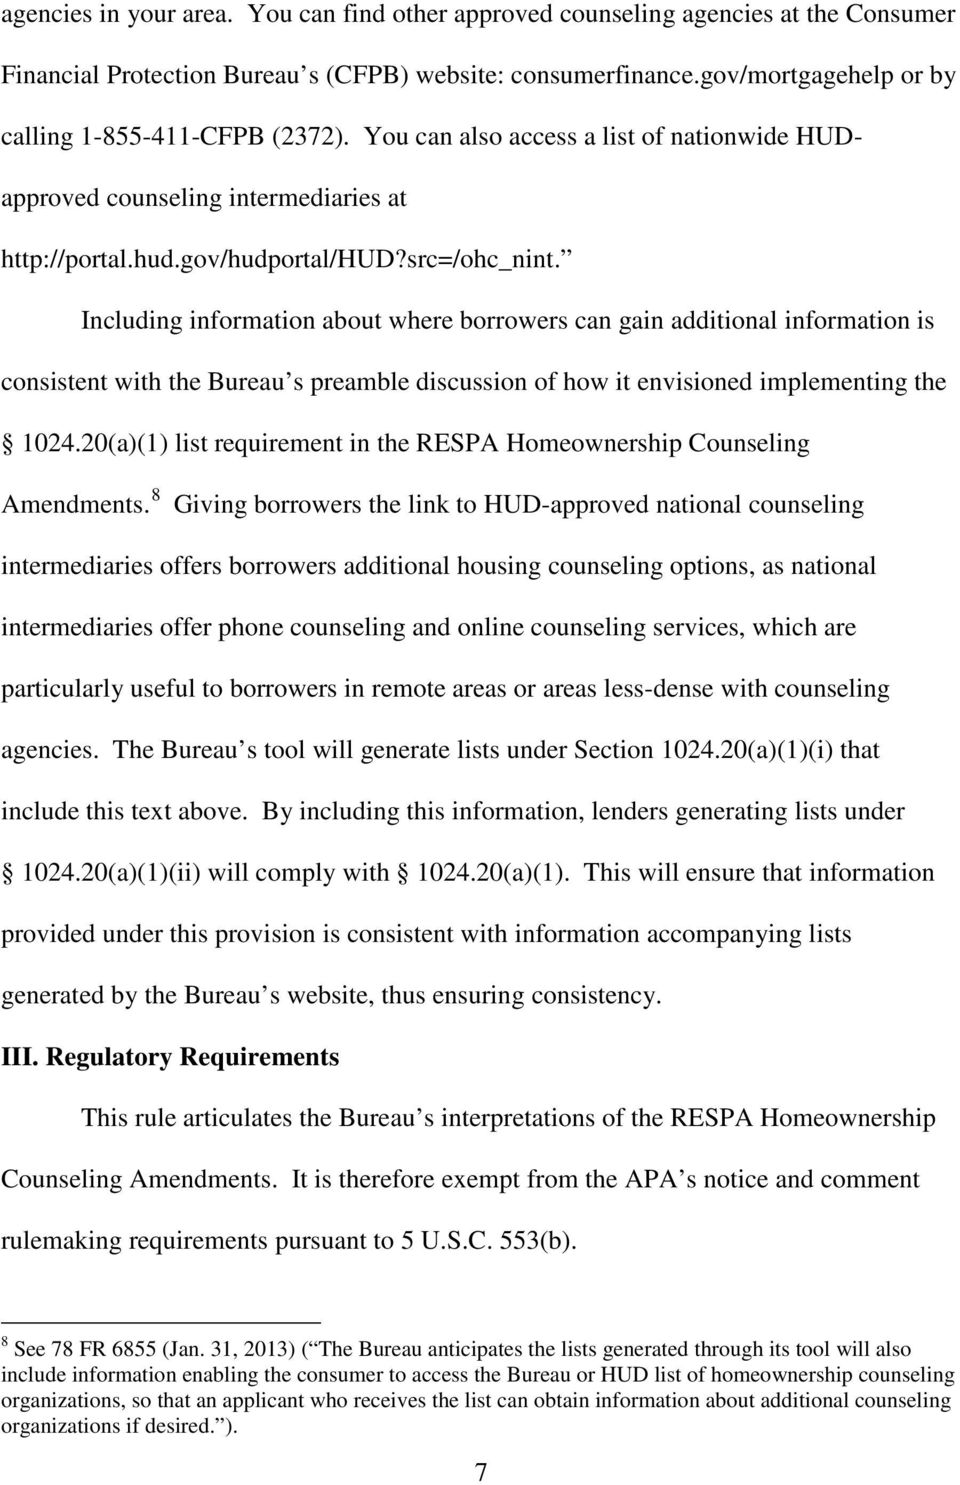 Including information about where borrowers can gain additional information is consistent with the Bureau s preamble discussion of how it envisioned implementing the 1024.